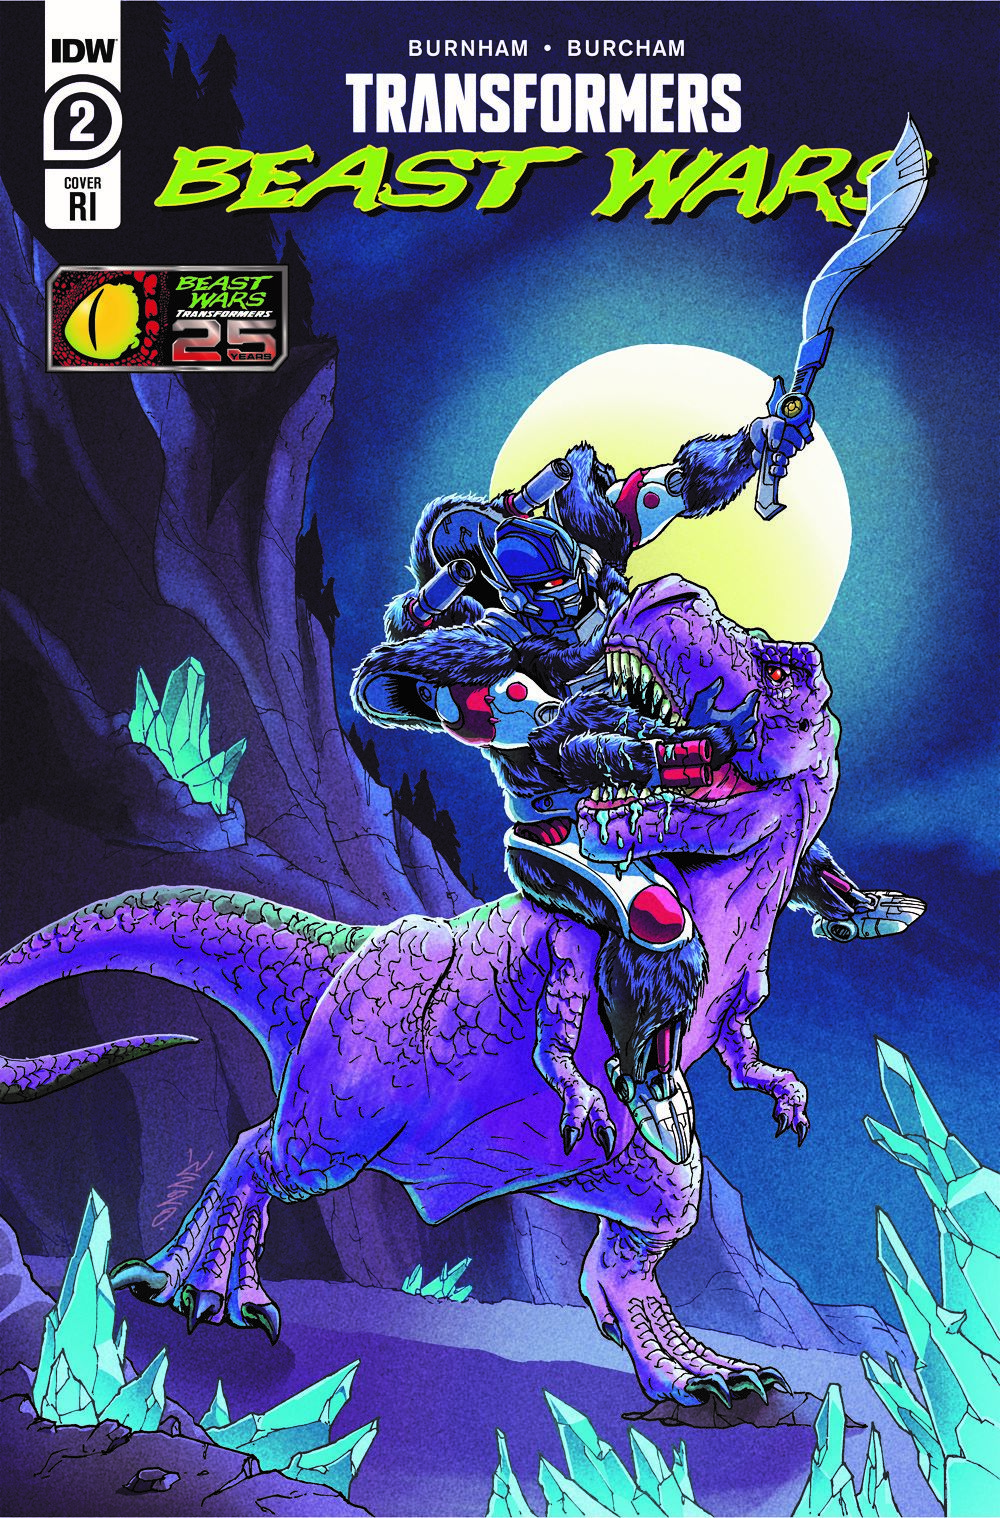 TFBW-Cover-RI ComicList Previews: TRANSFORMERS BEAST WARS #2